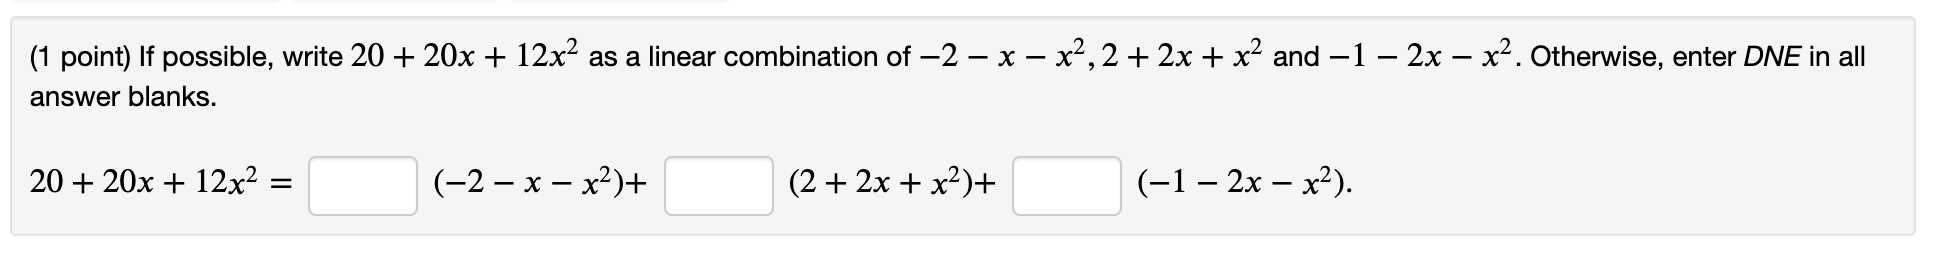 (1 point) If possible, write 20 + 20x + 12x2 as a linear combination of —2 - x - x2,2 + 2x + x2 and -1 – 2x – x2. Otherwise,